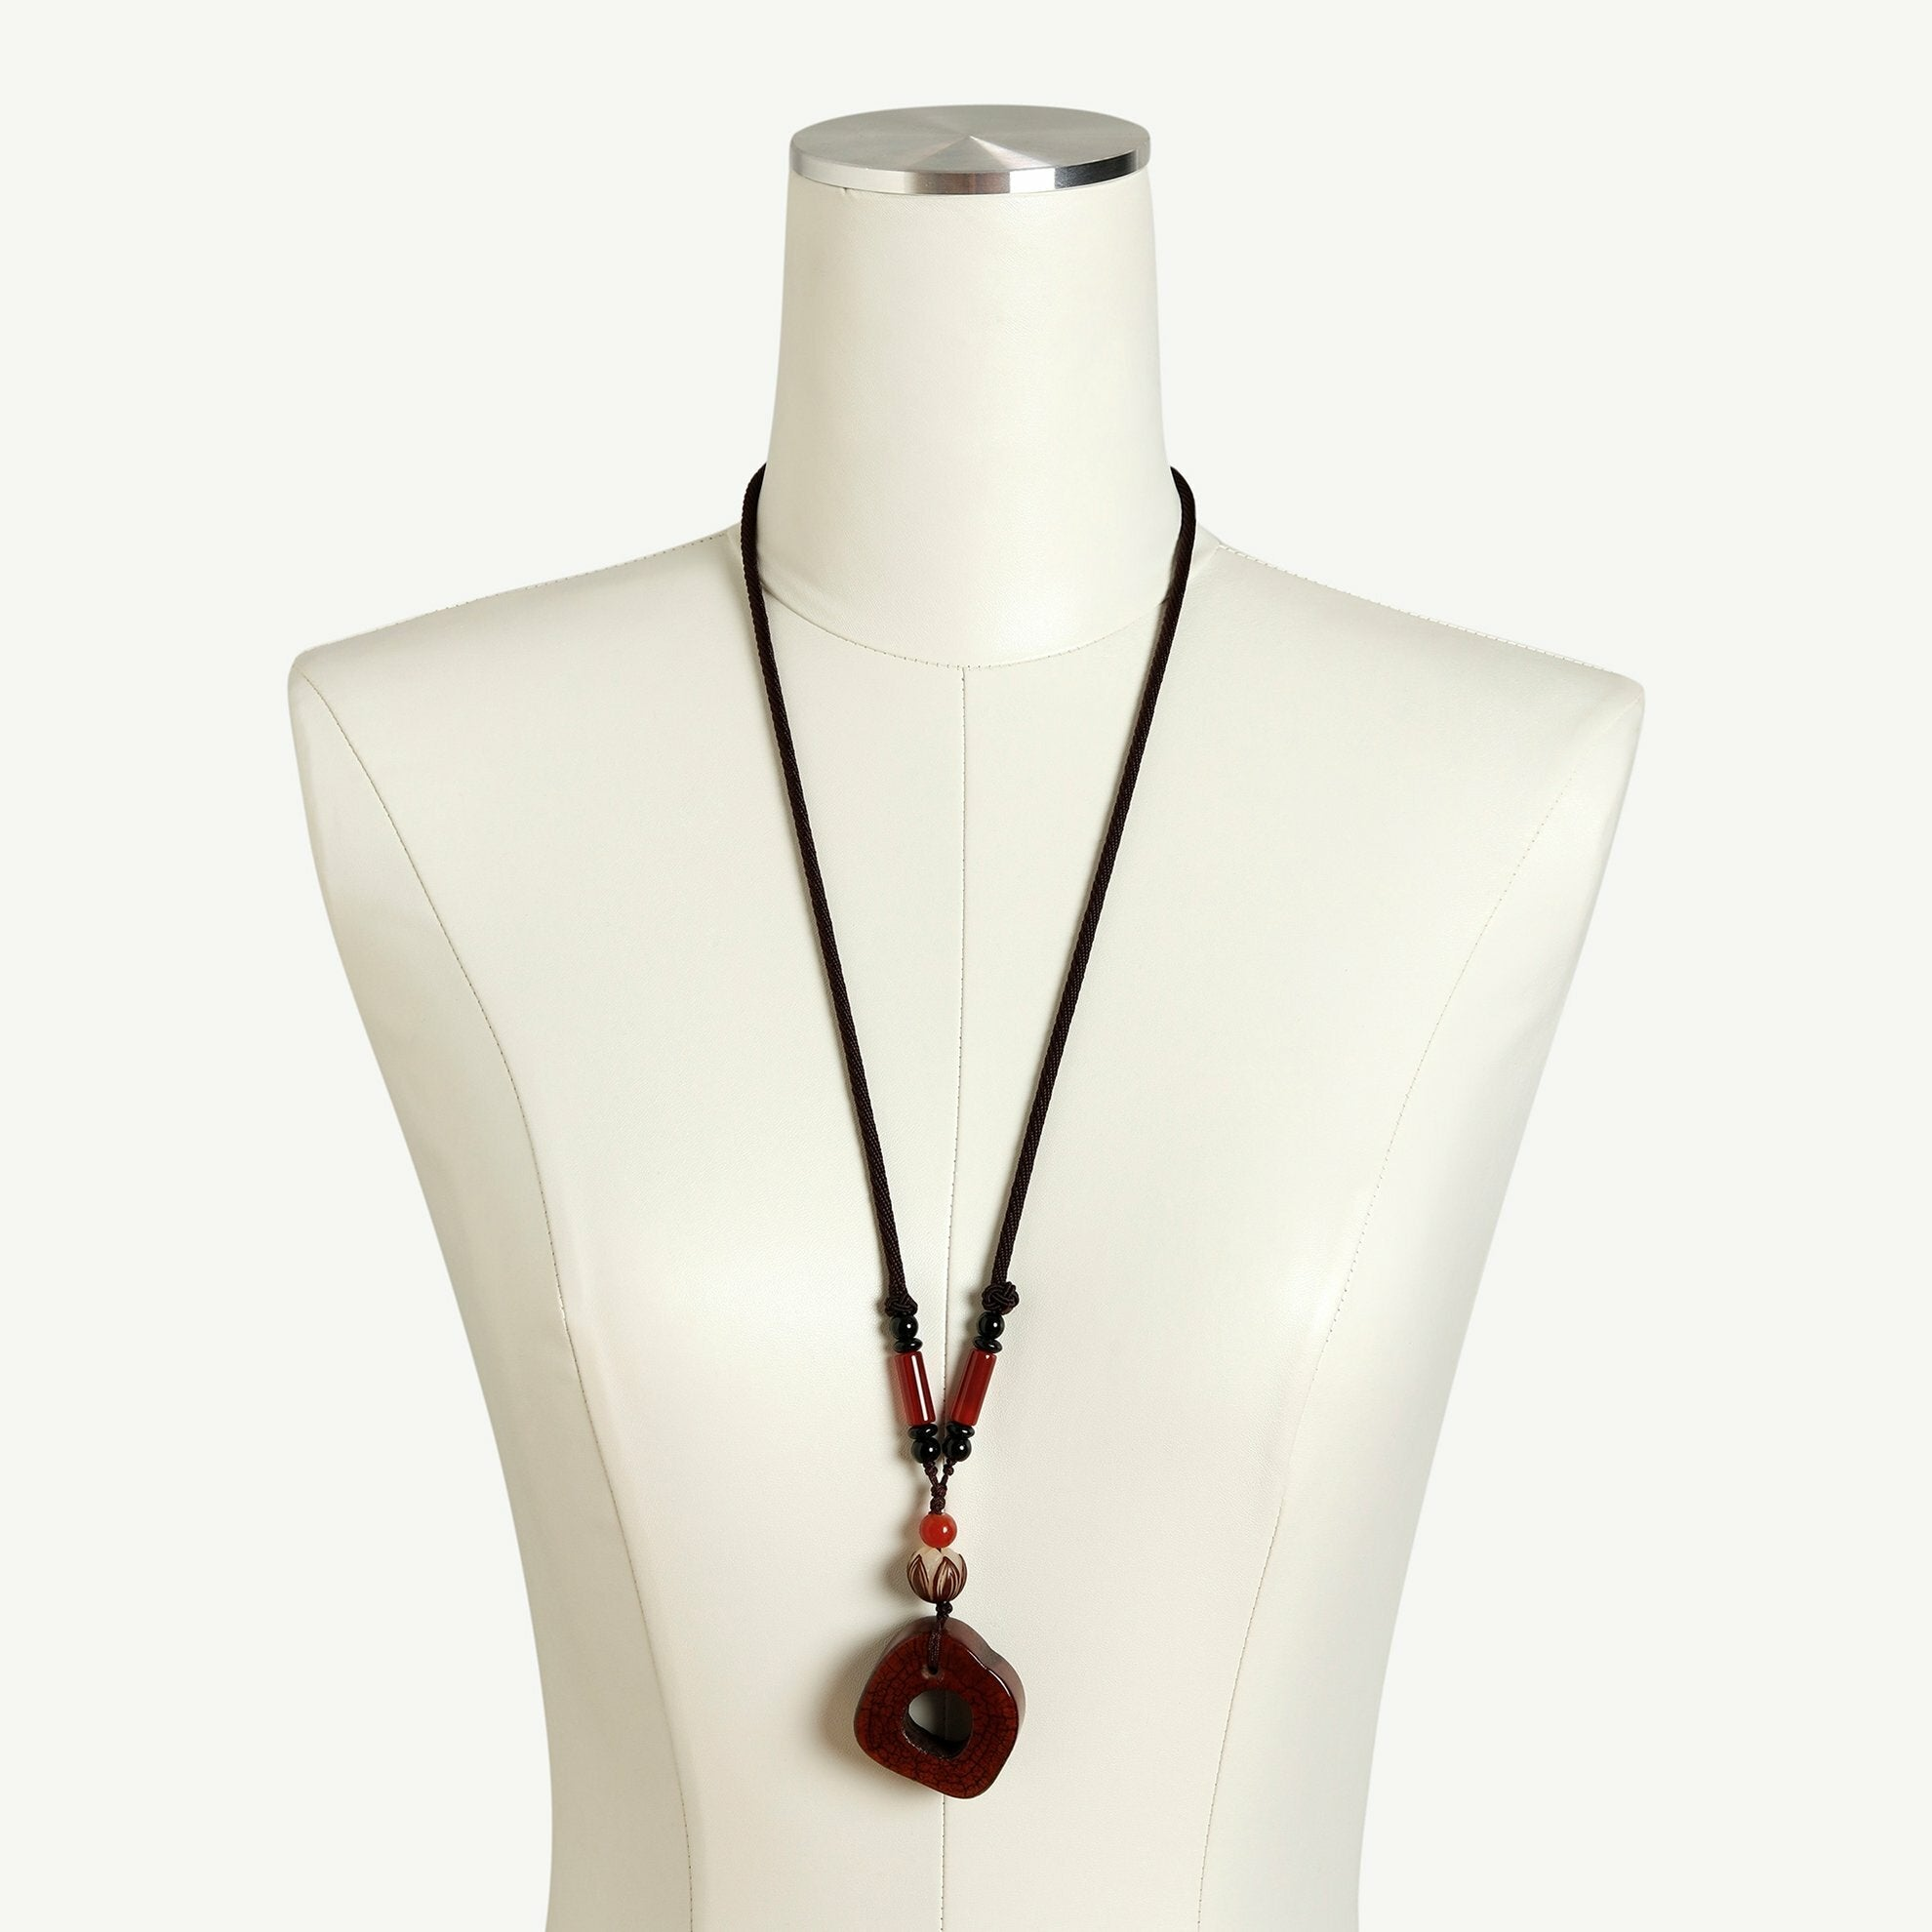 Brown Stone Necklace on Dress Form